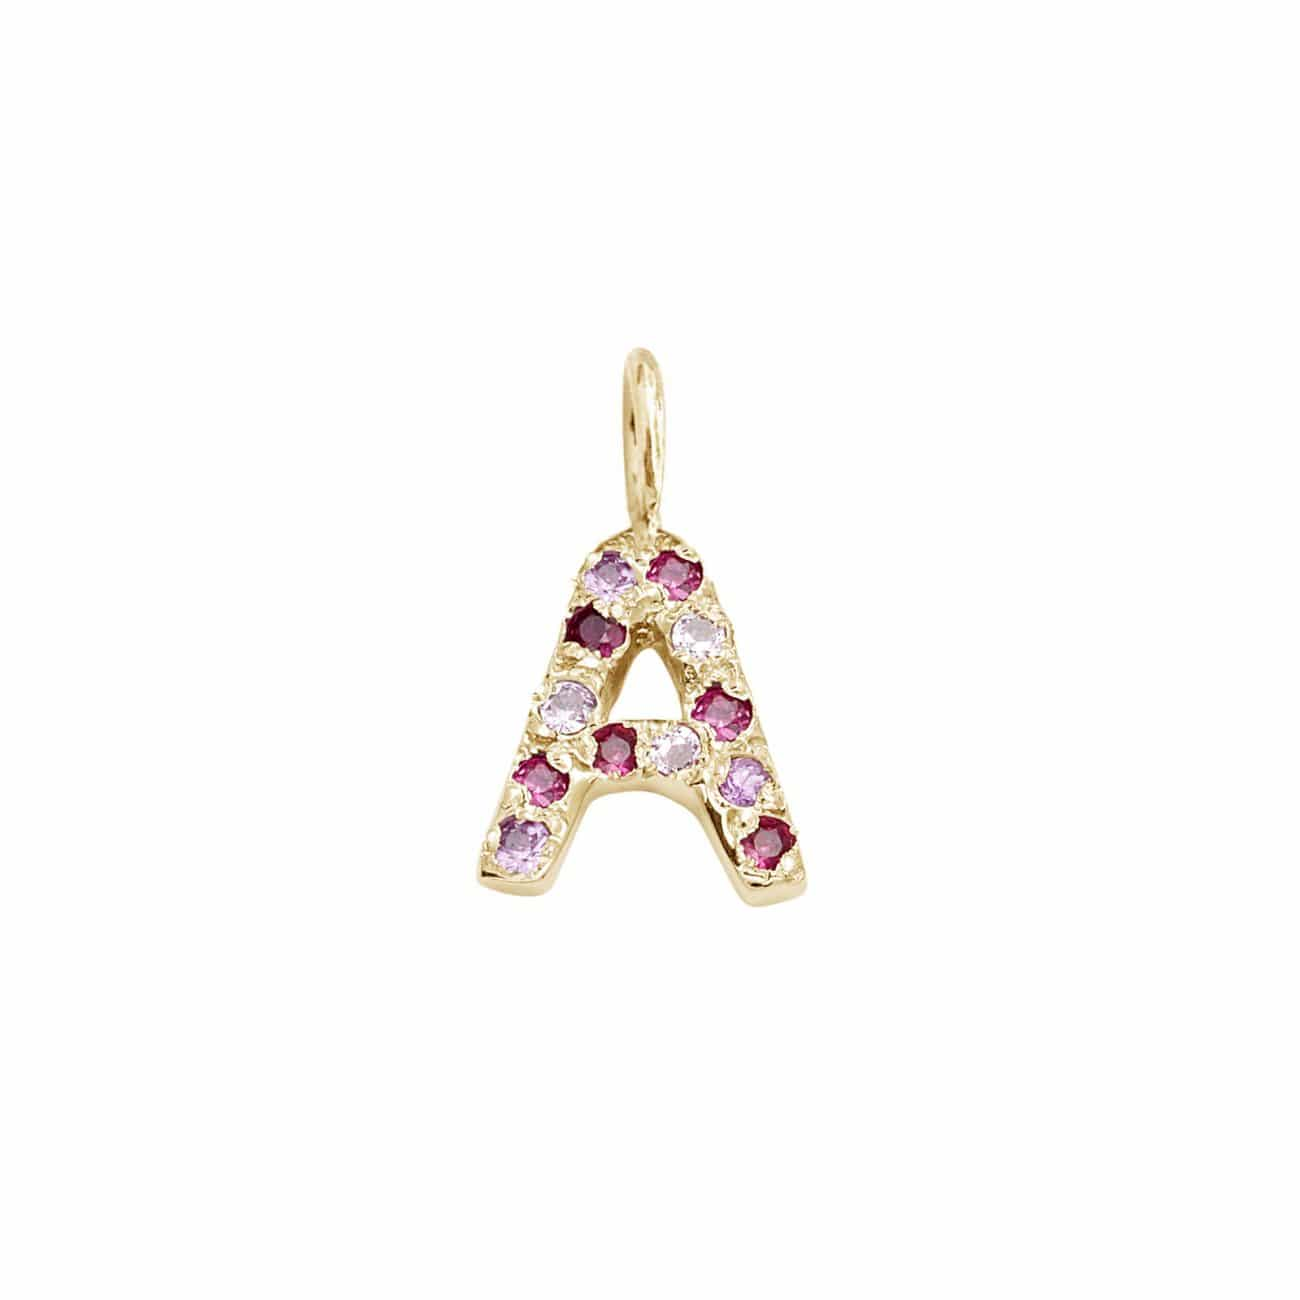 Letter Charm Pendant with Pink Hue Gems in 14k Yellow Gold